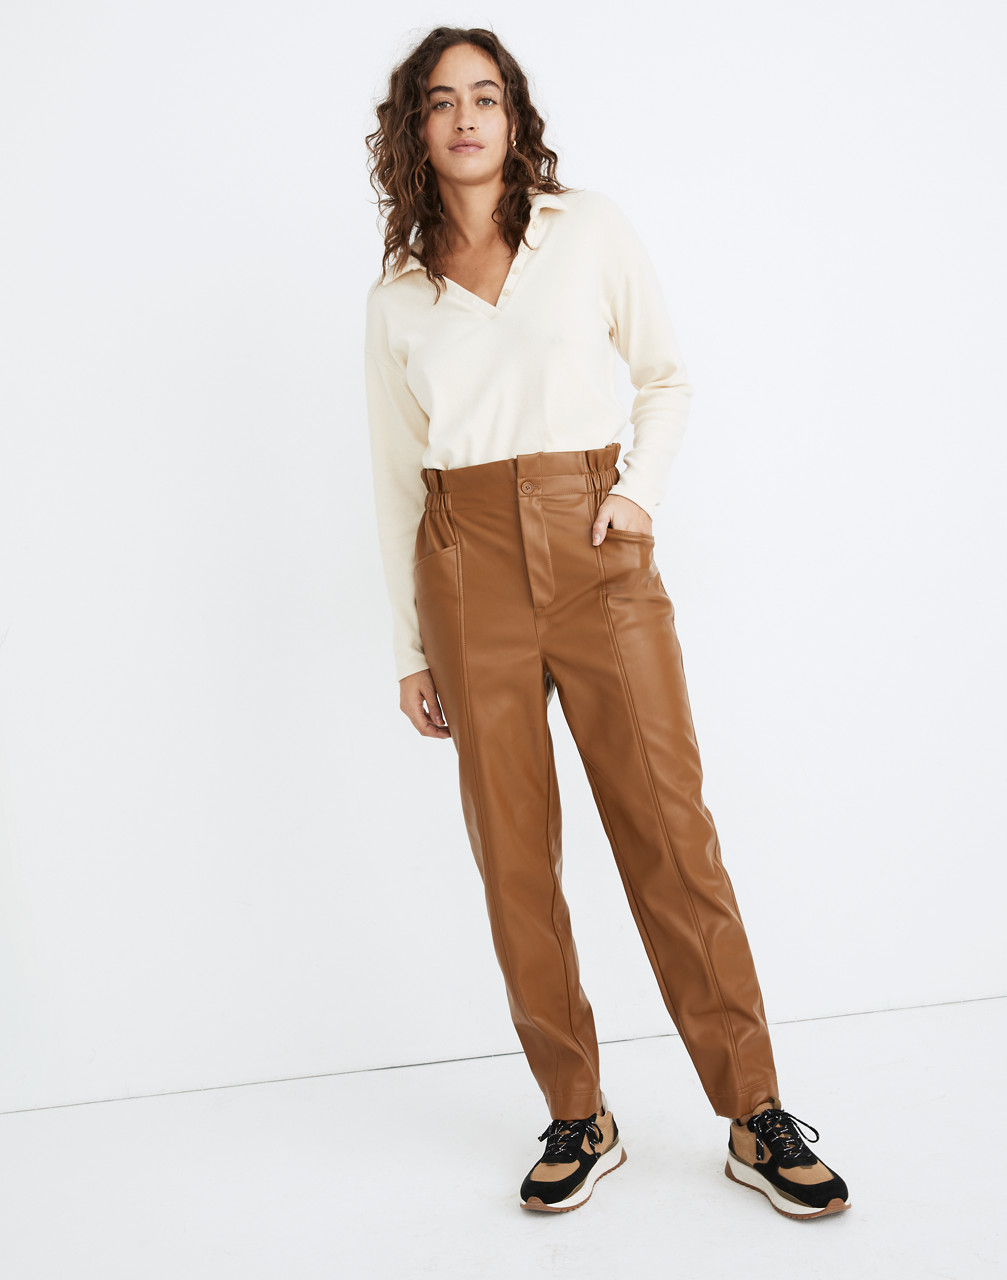 Hippie Pants, Jeans, Bell Bottoms, Palazzo, Yoga Vegan Leather Pull-On Paperbag Pants $138.00 AT vintagedancer.com